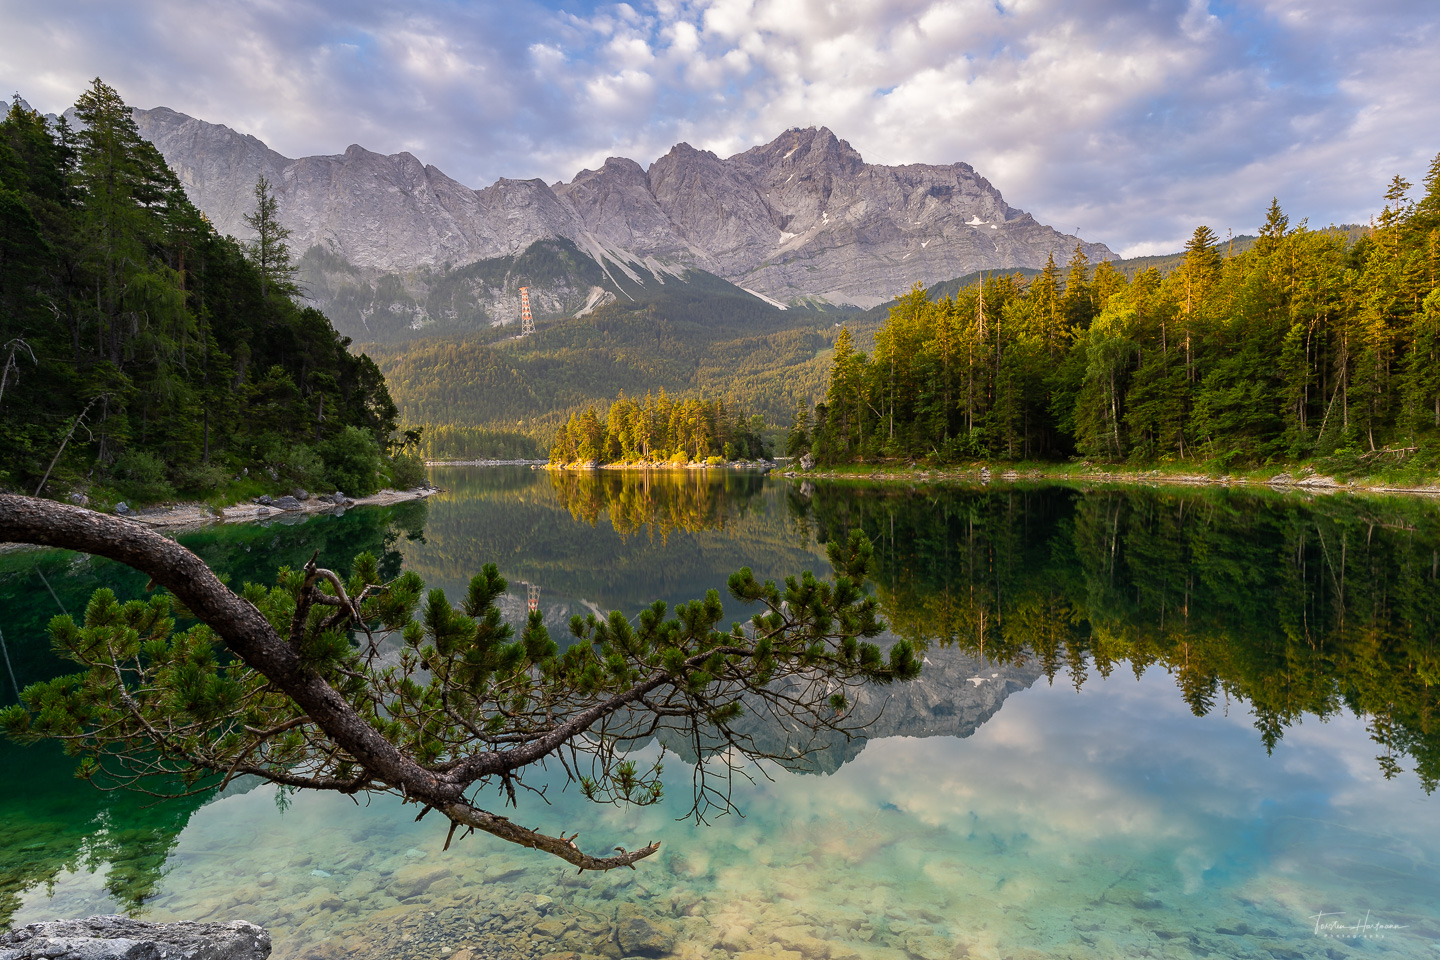 Eibsee, Bayern, Germany